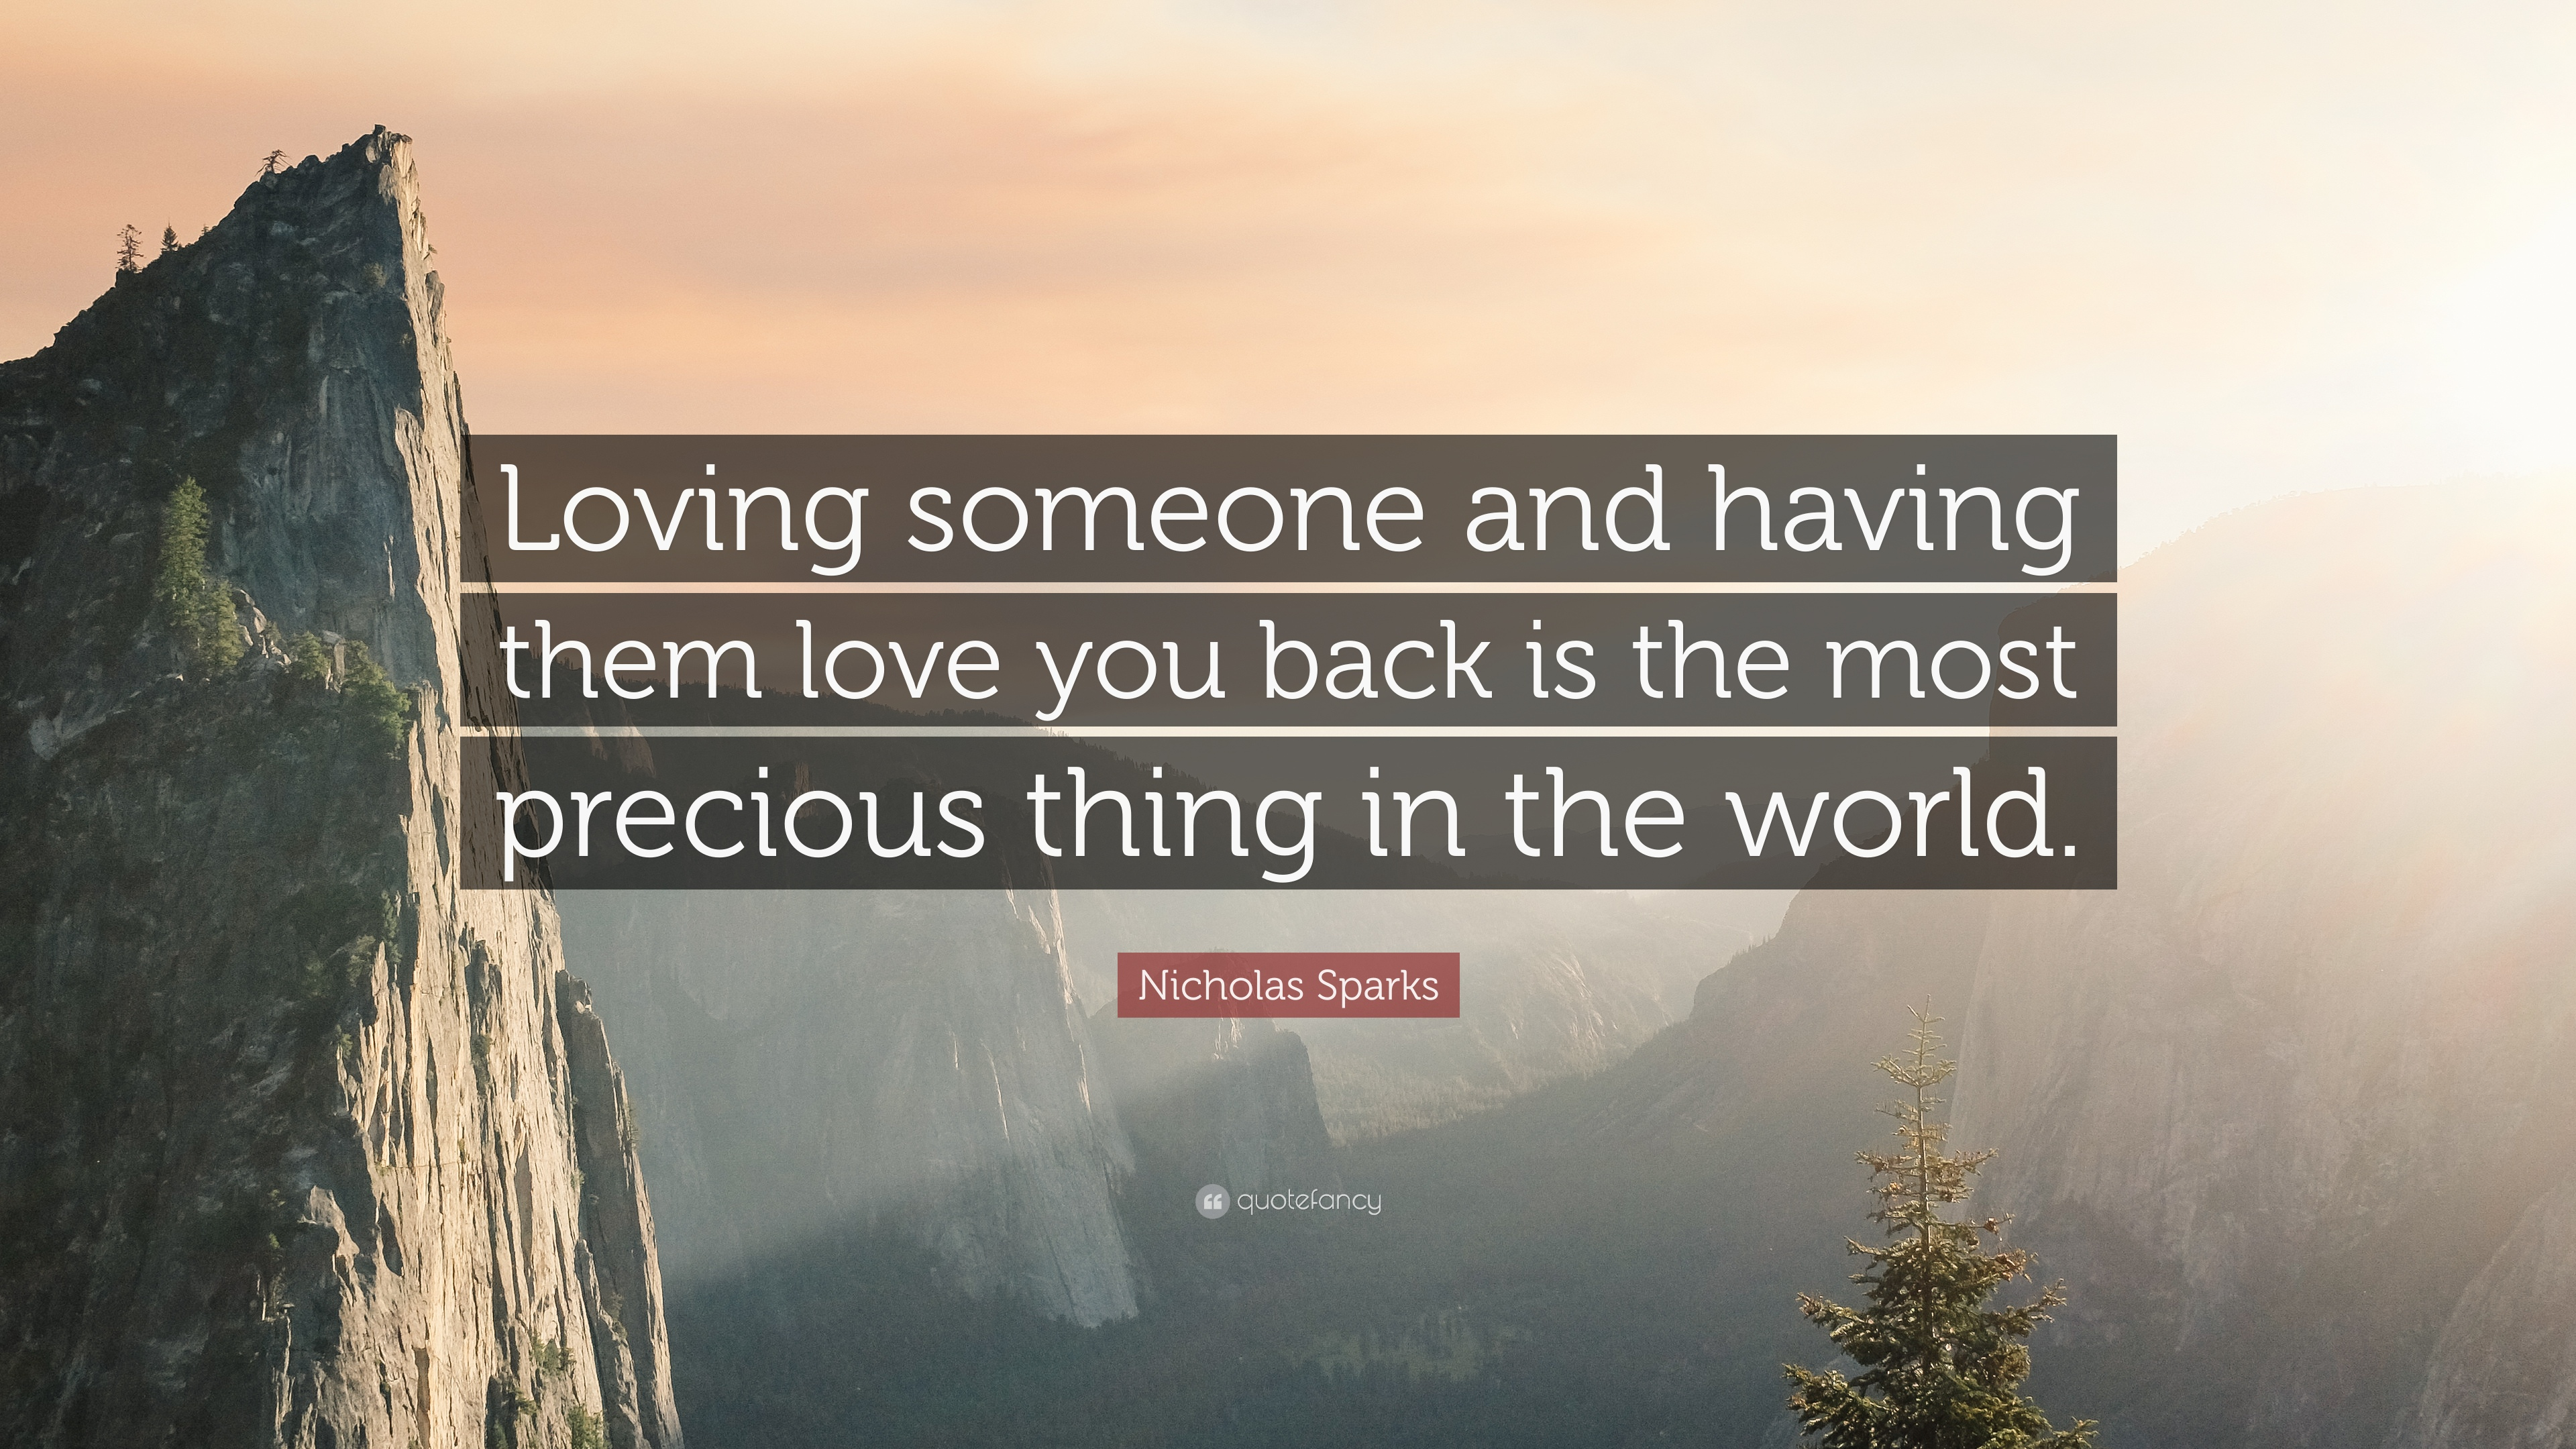 how to love someone back